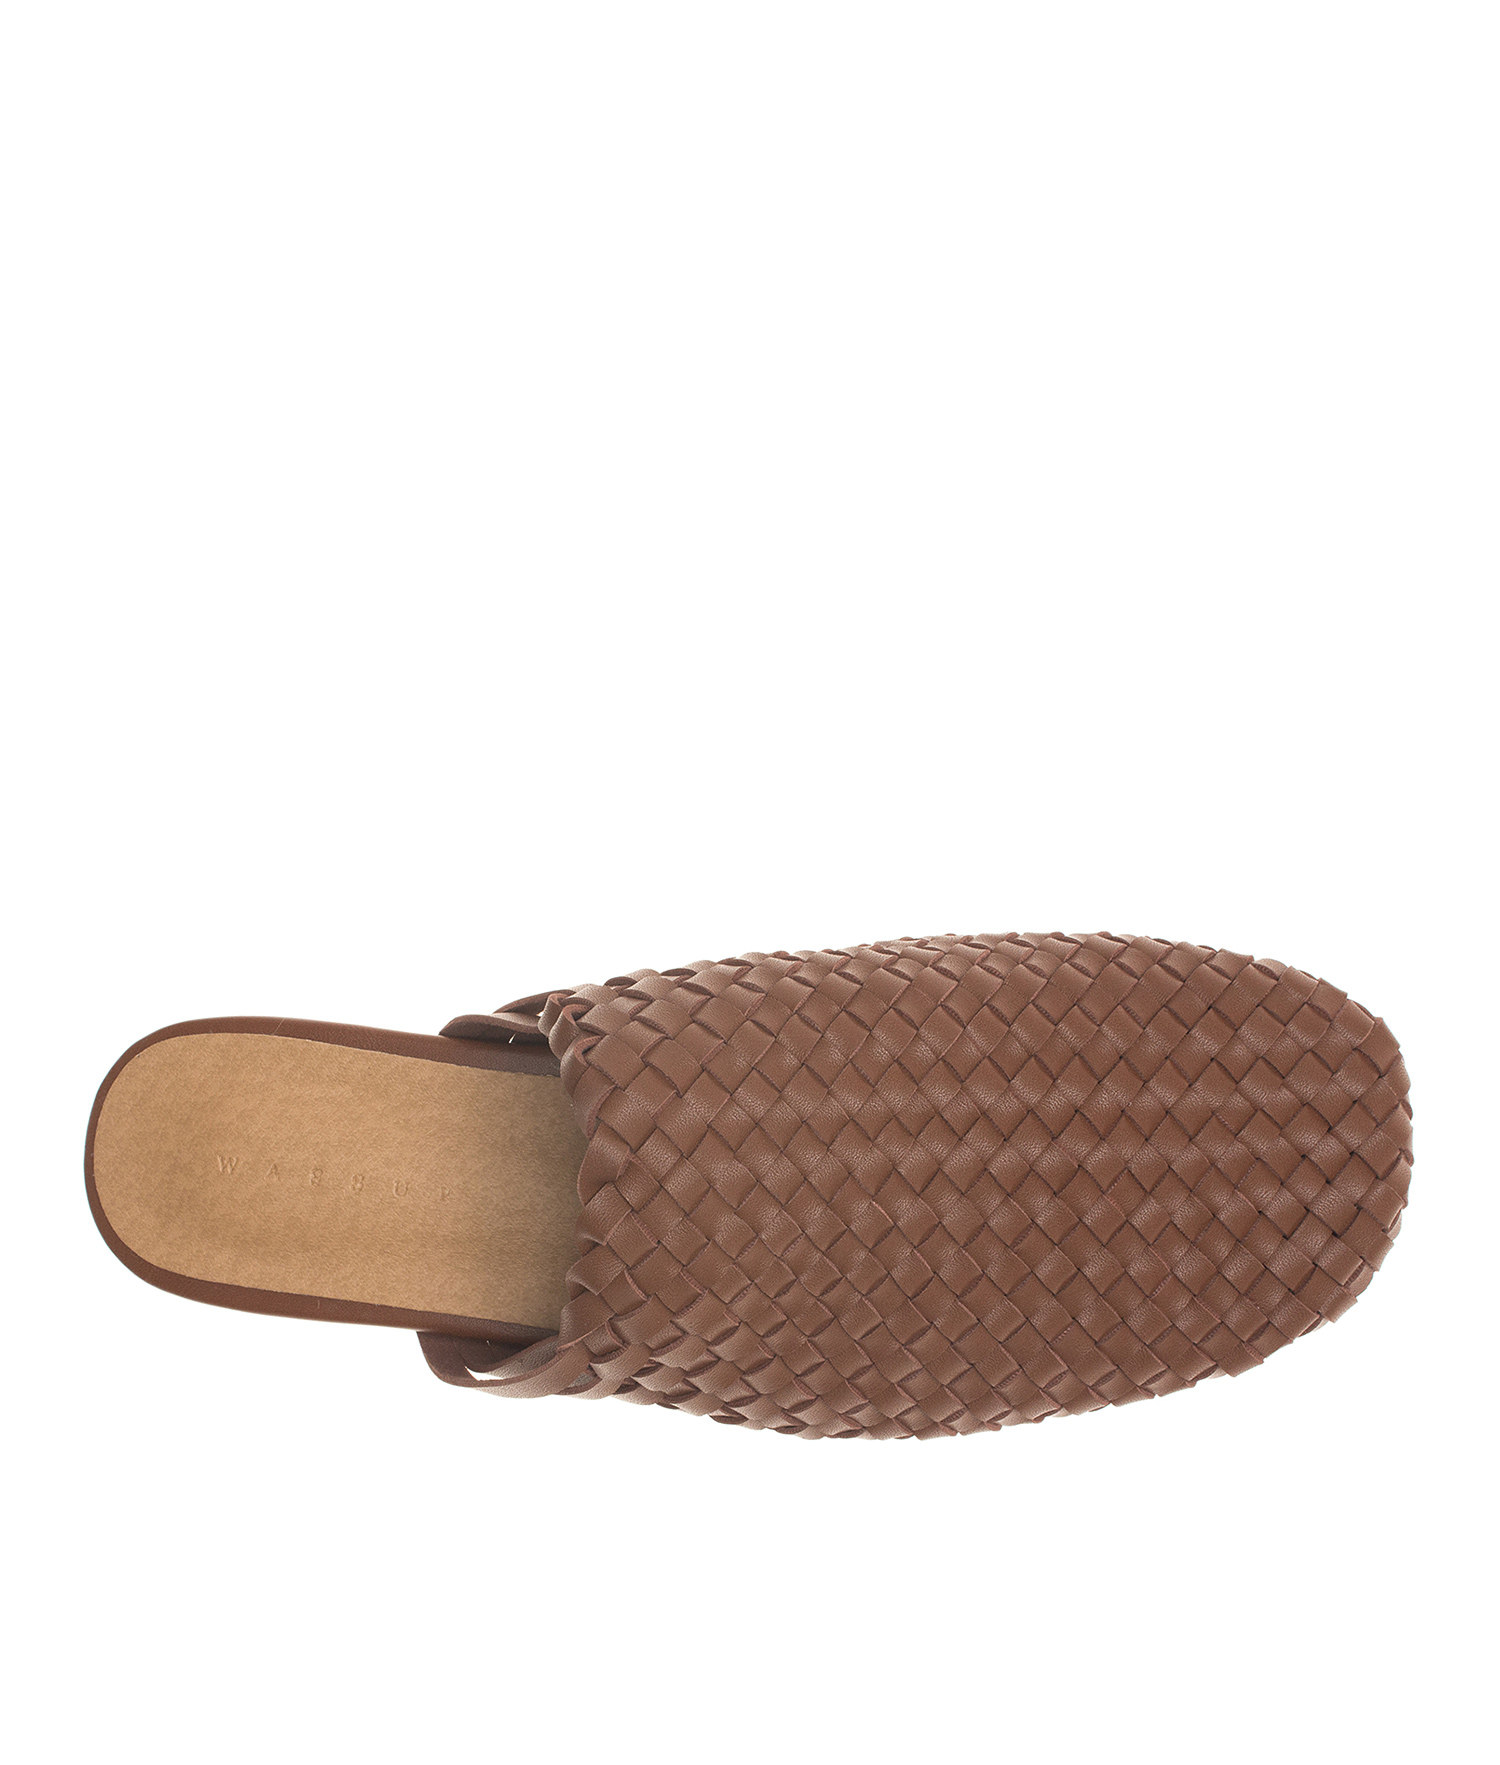 ec4609e812ca3 Brown Leather Slippers - Almaderock.org Best Photo 2018